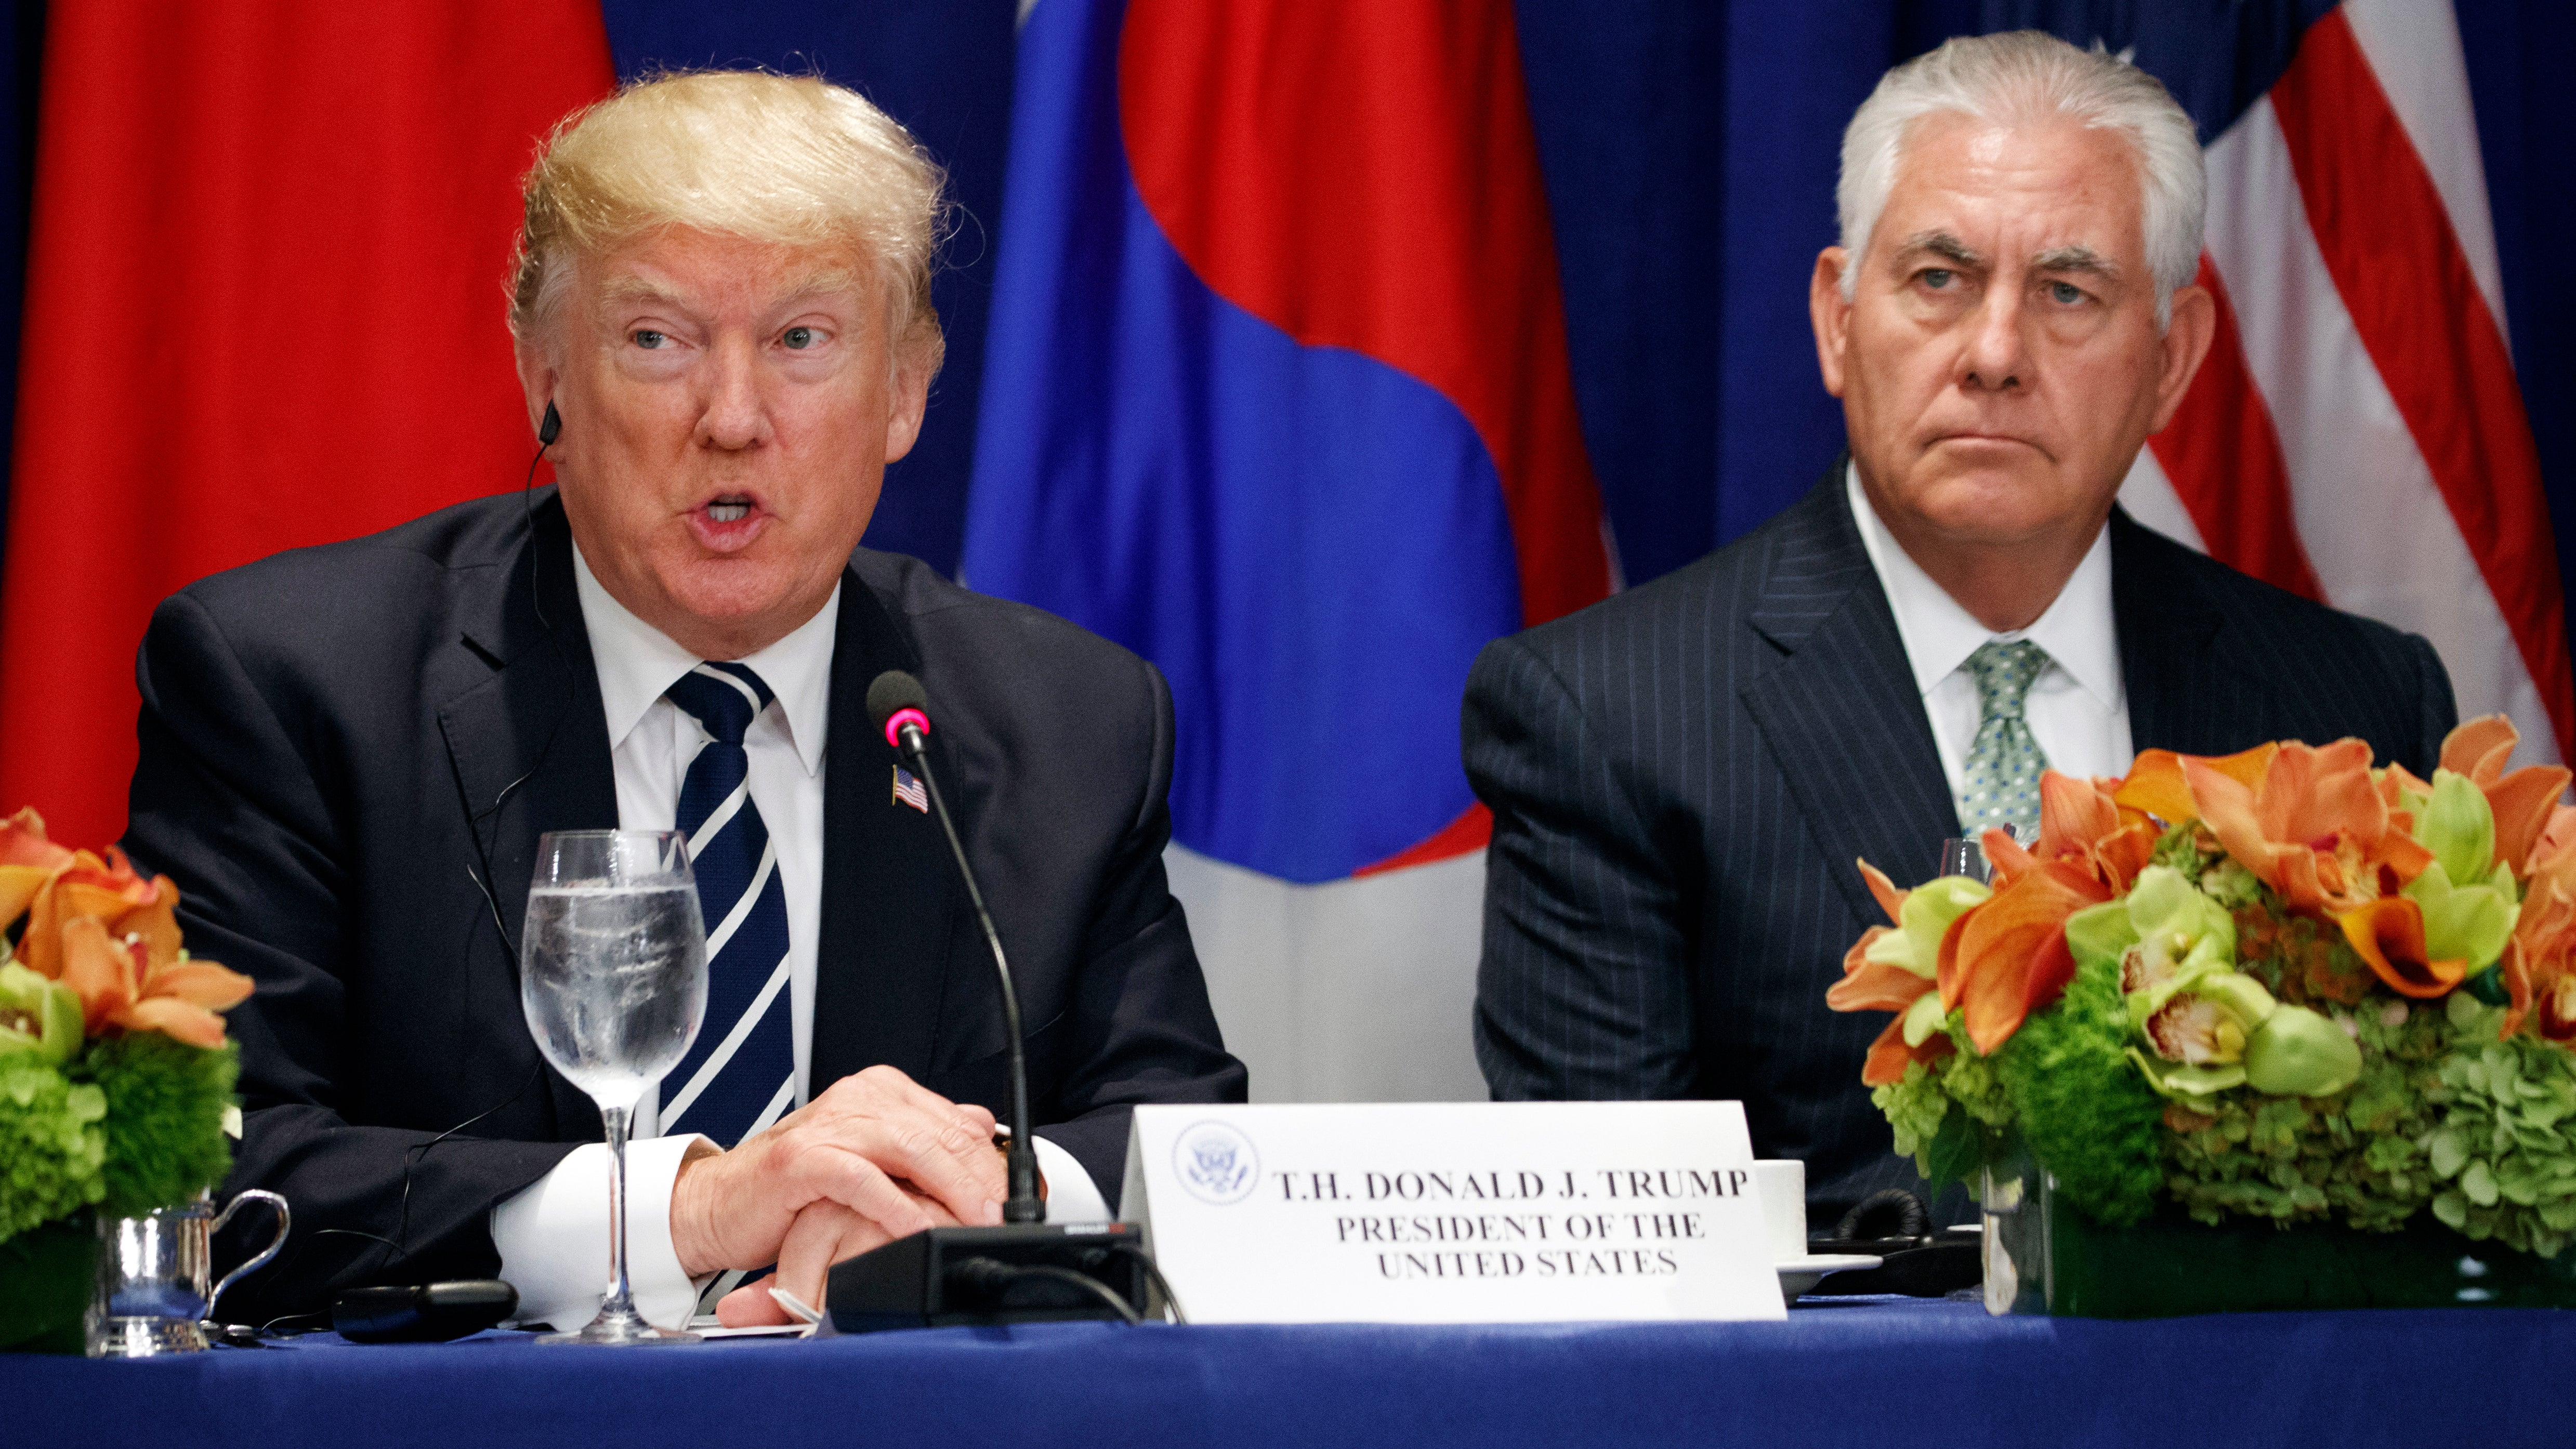 Trump says Tillerson